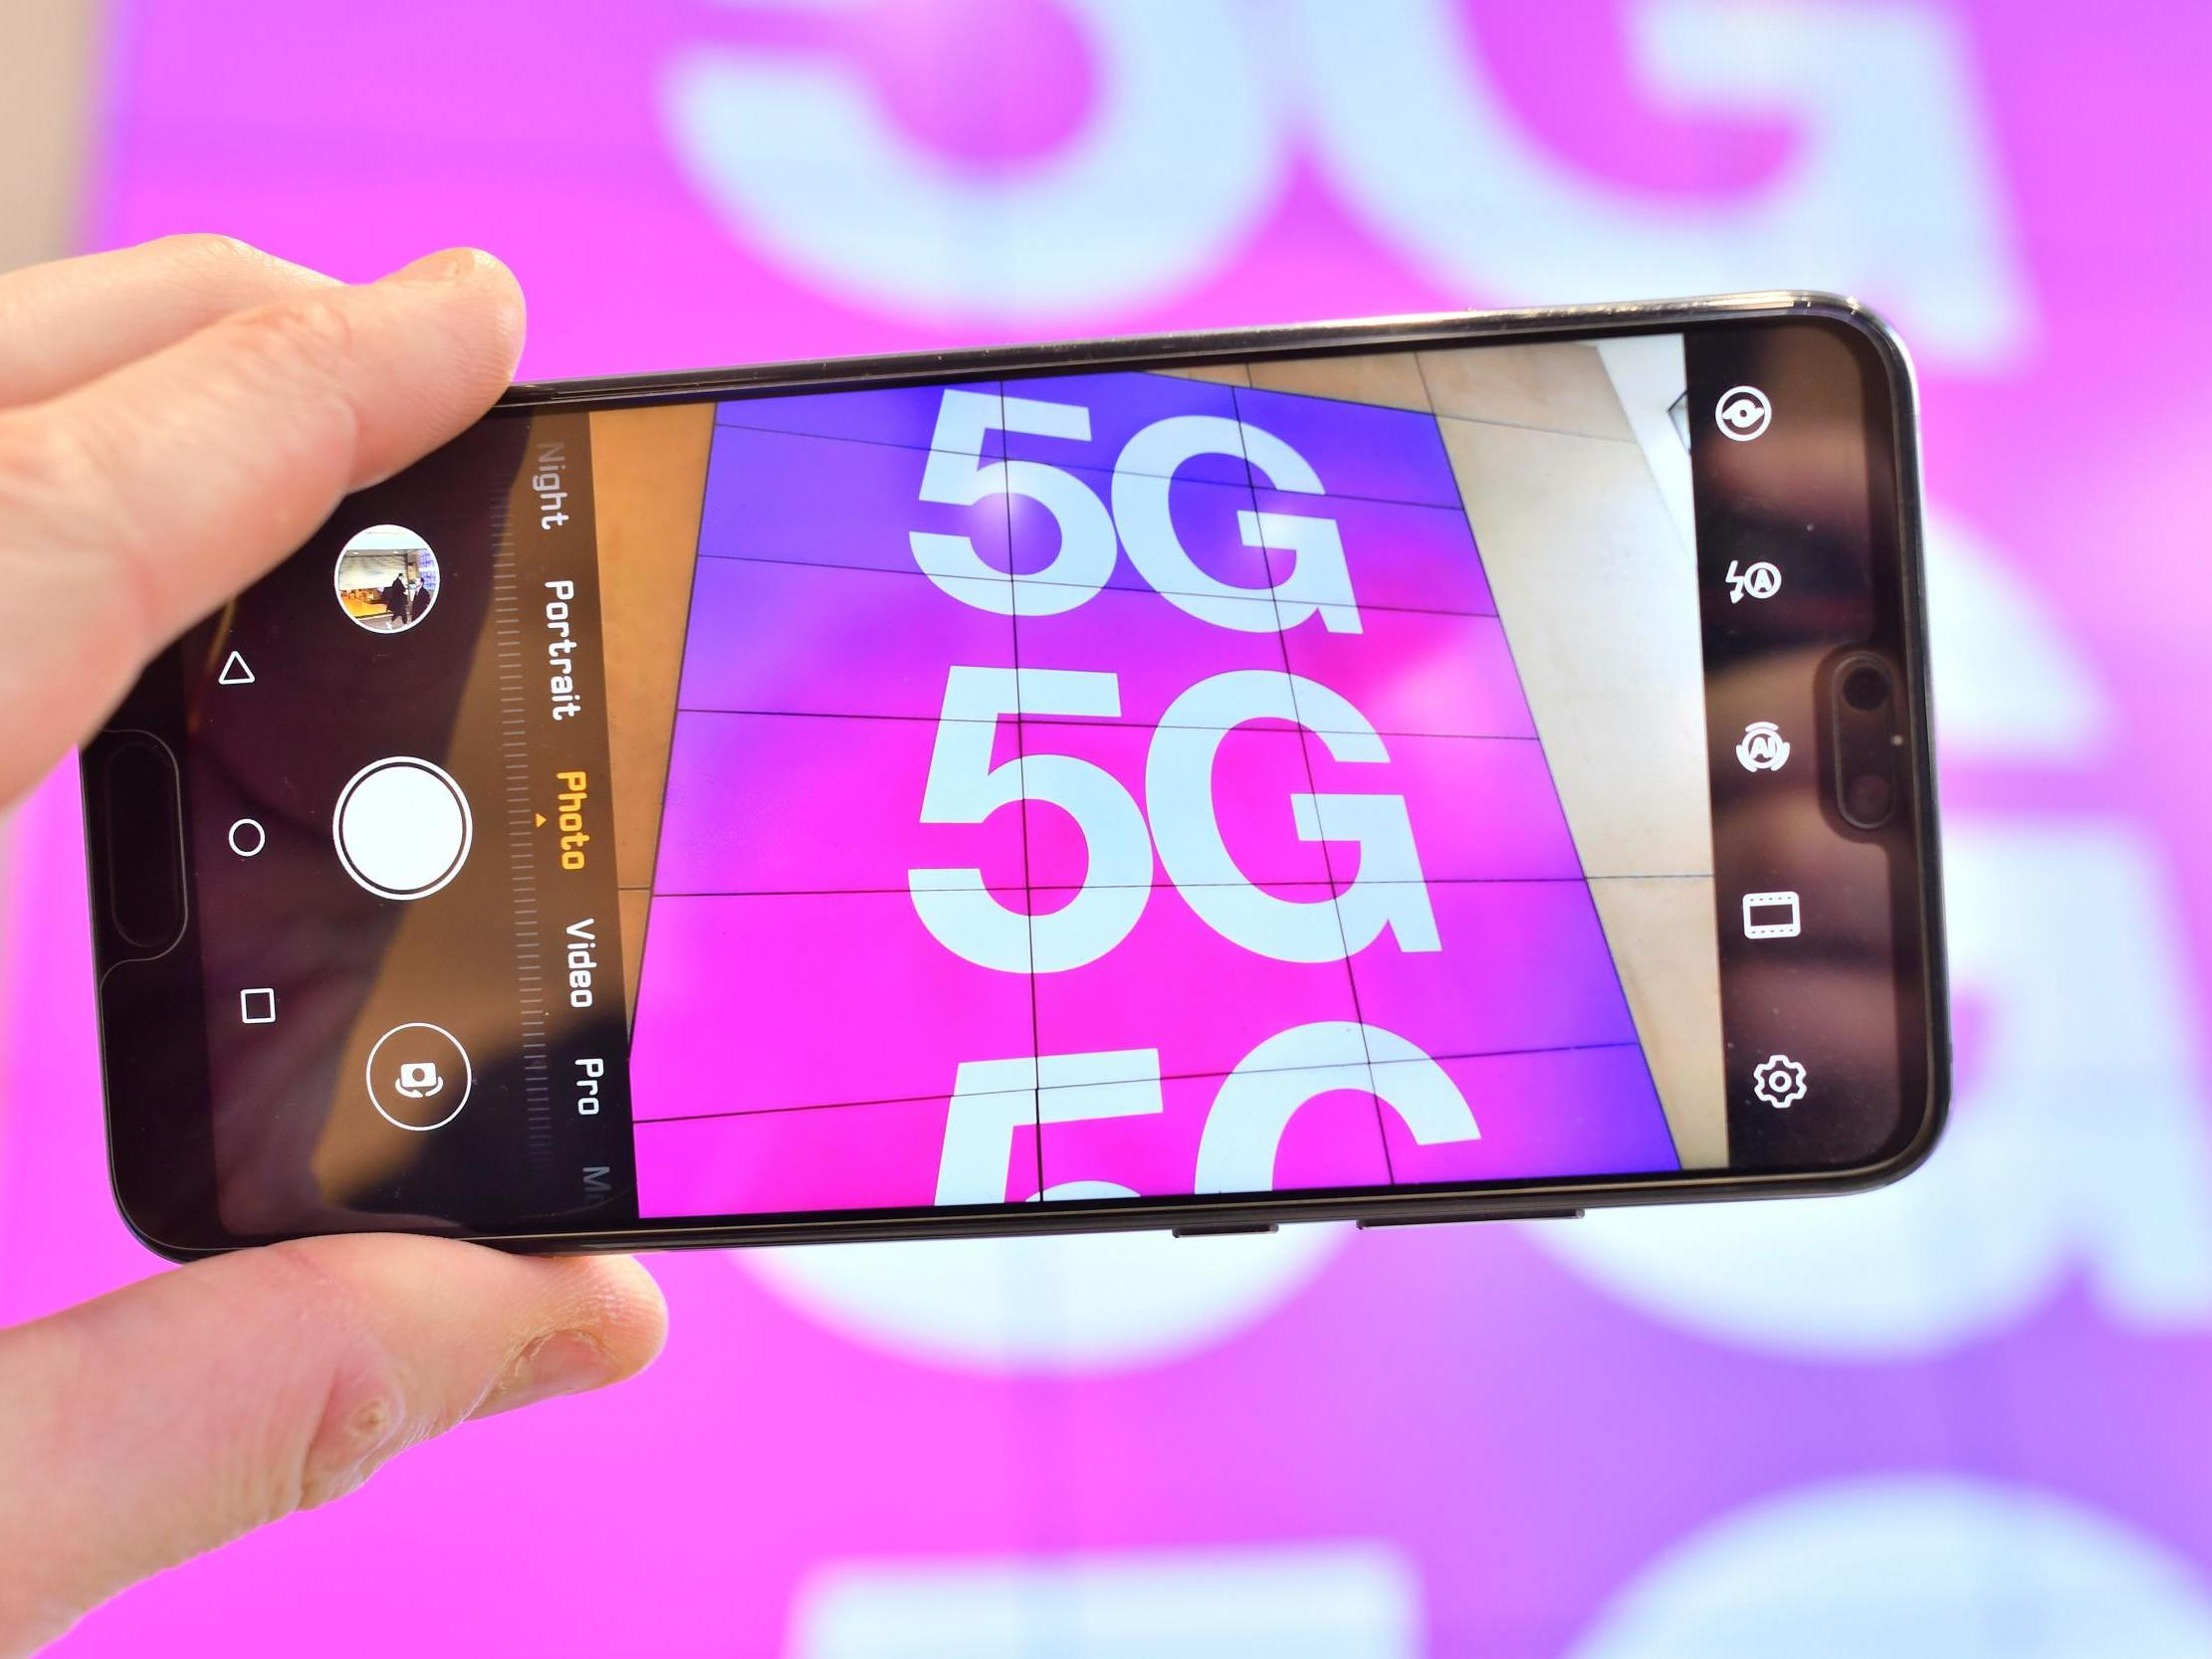 What actually is 5G and why is it plagued by conspiracy theories?